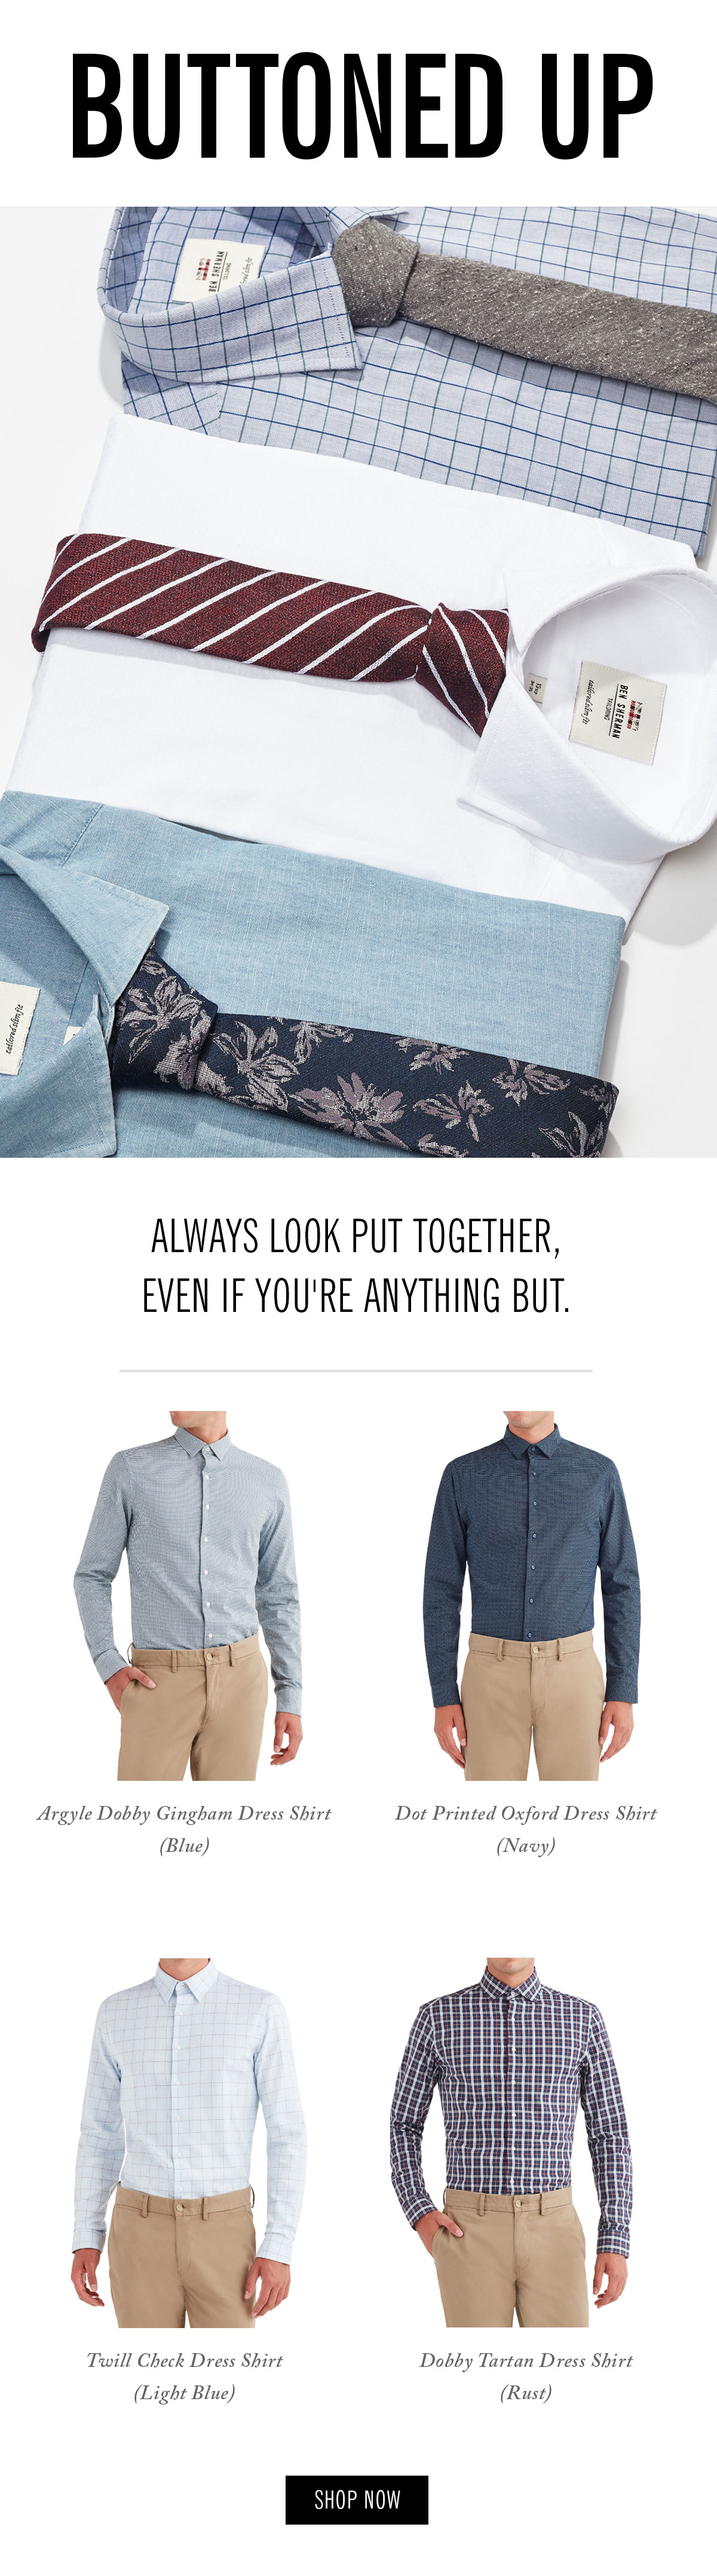 Dress Shirts | Buttoned Up | Always look put together, even if you're anything but.